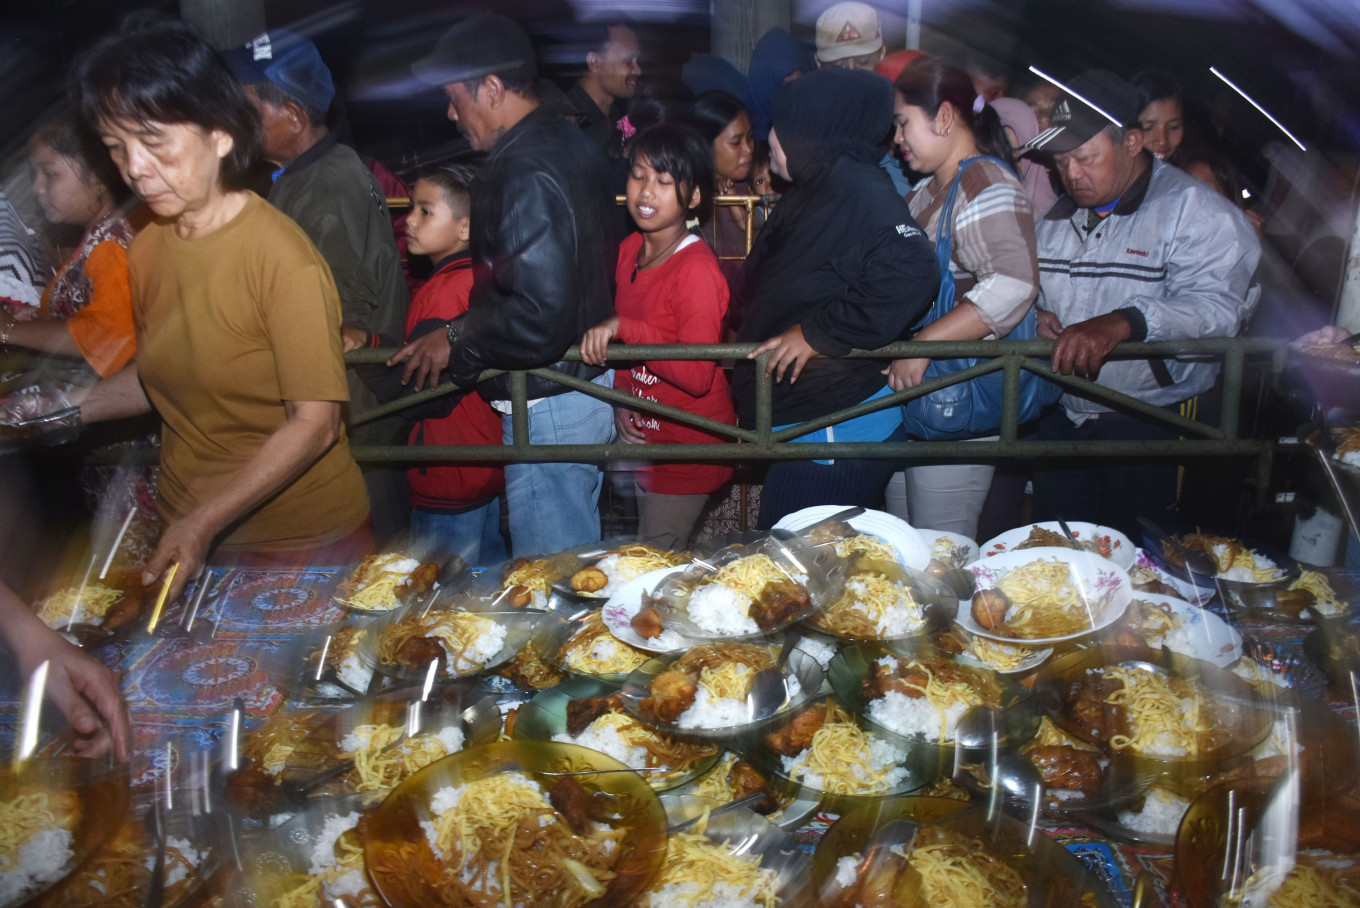 Buddhists In Malang Hand Out Iftar Meals To Local Muslims Lifestyle The Jakarta Post